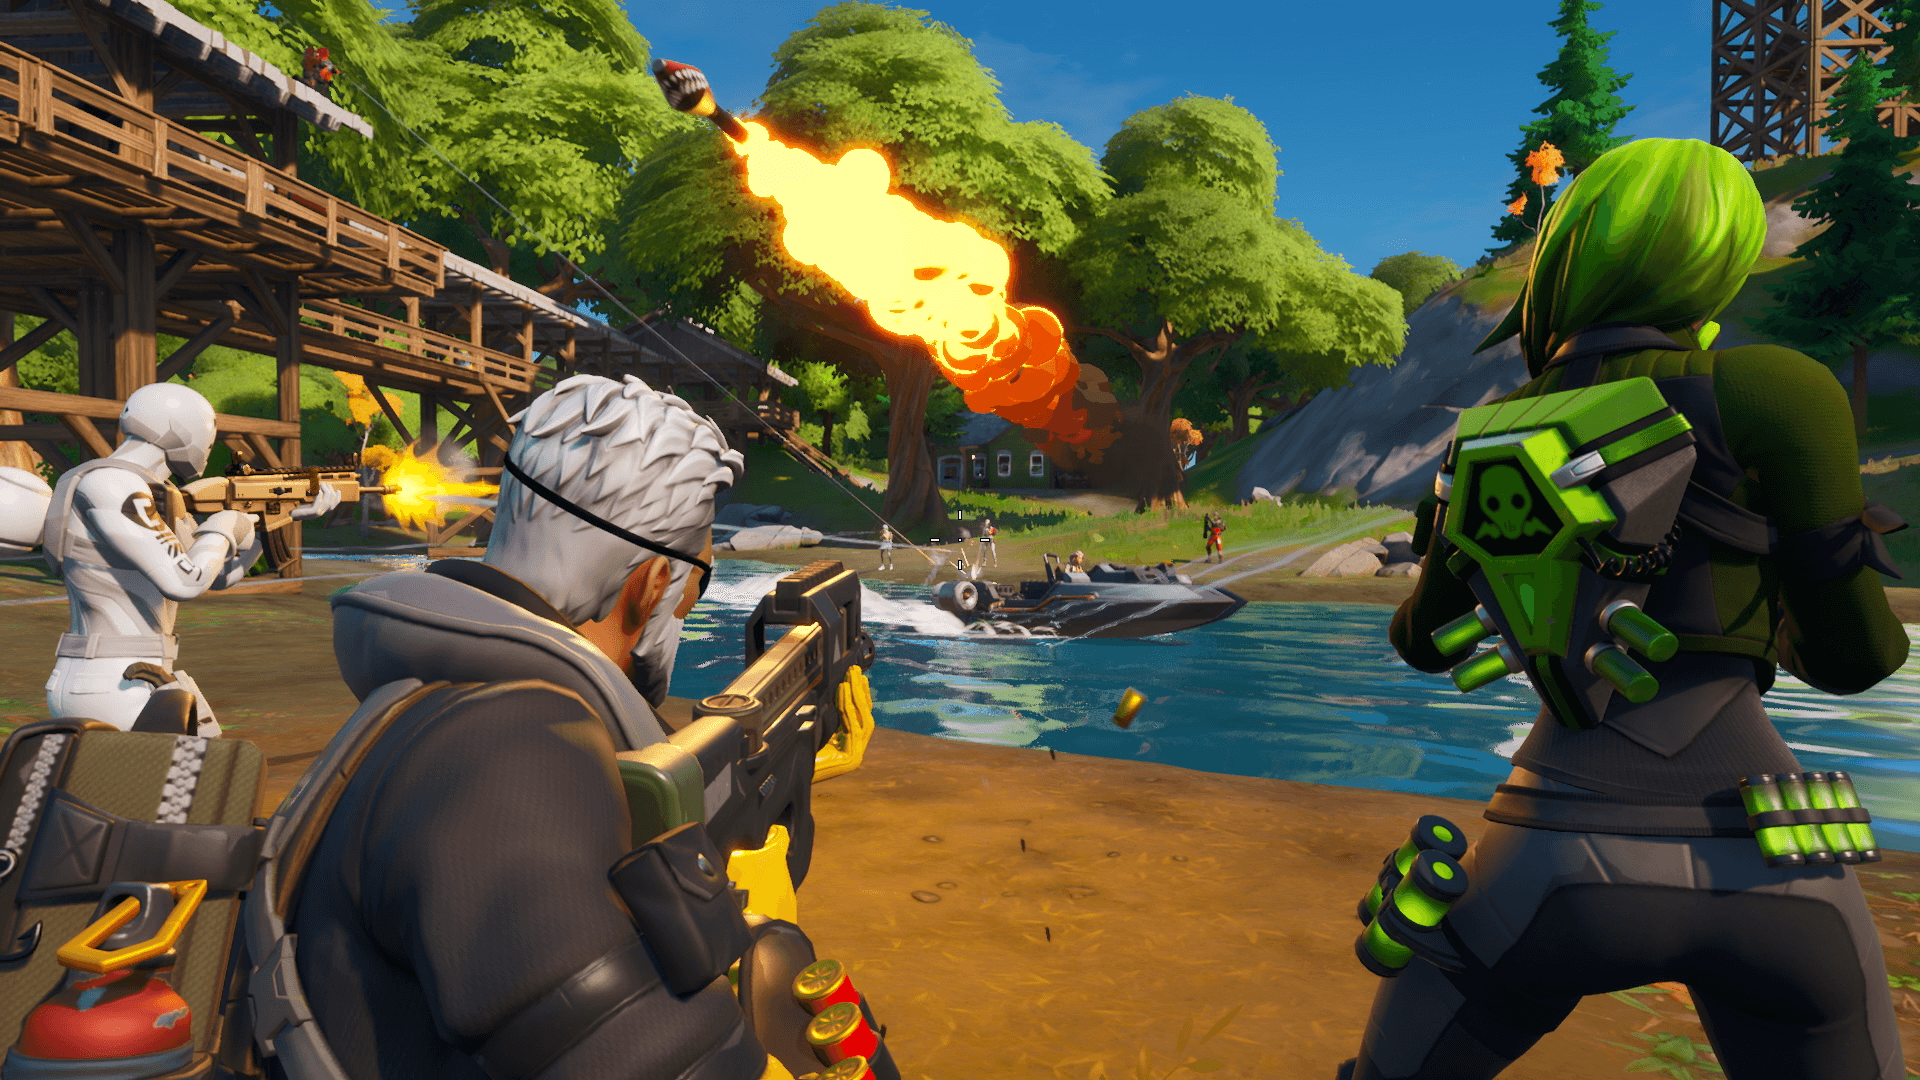 Fortnite Chapter 2 Trailer Leaks, Debuts New Map and Mechanics